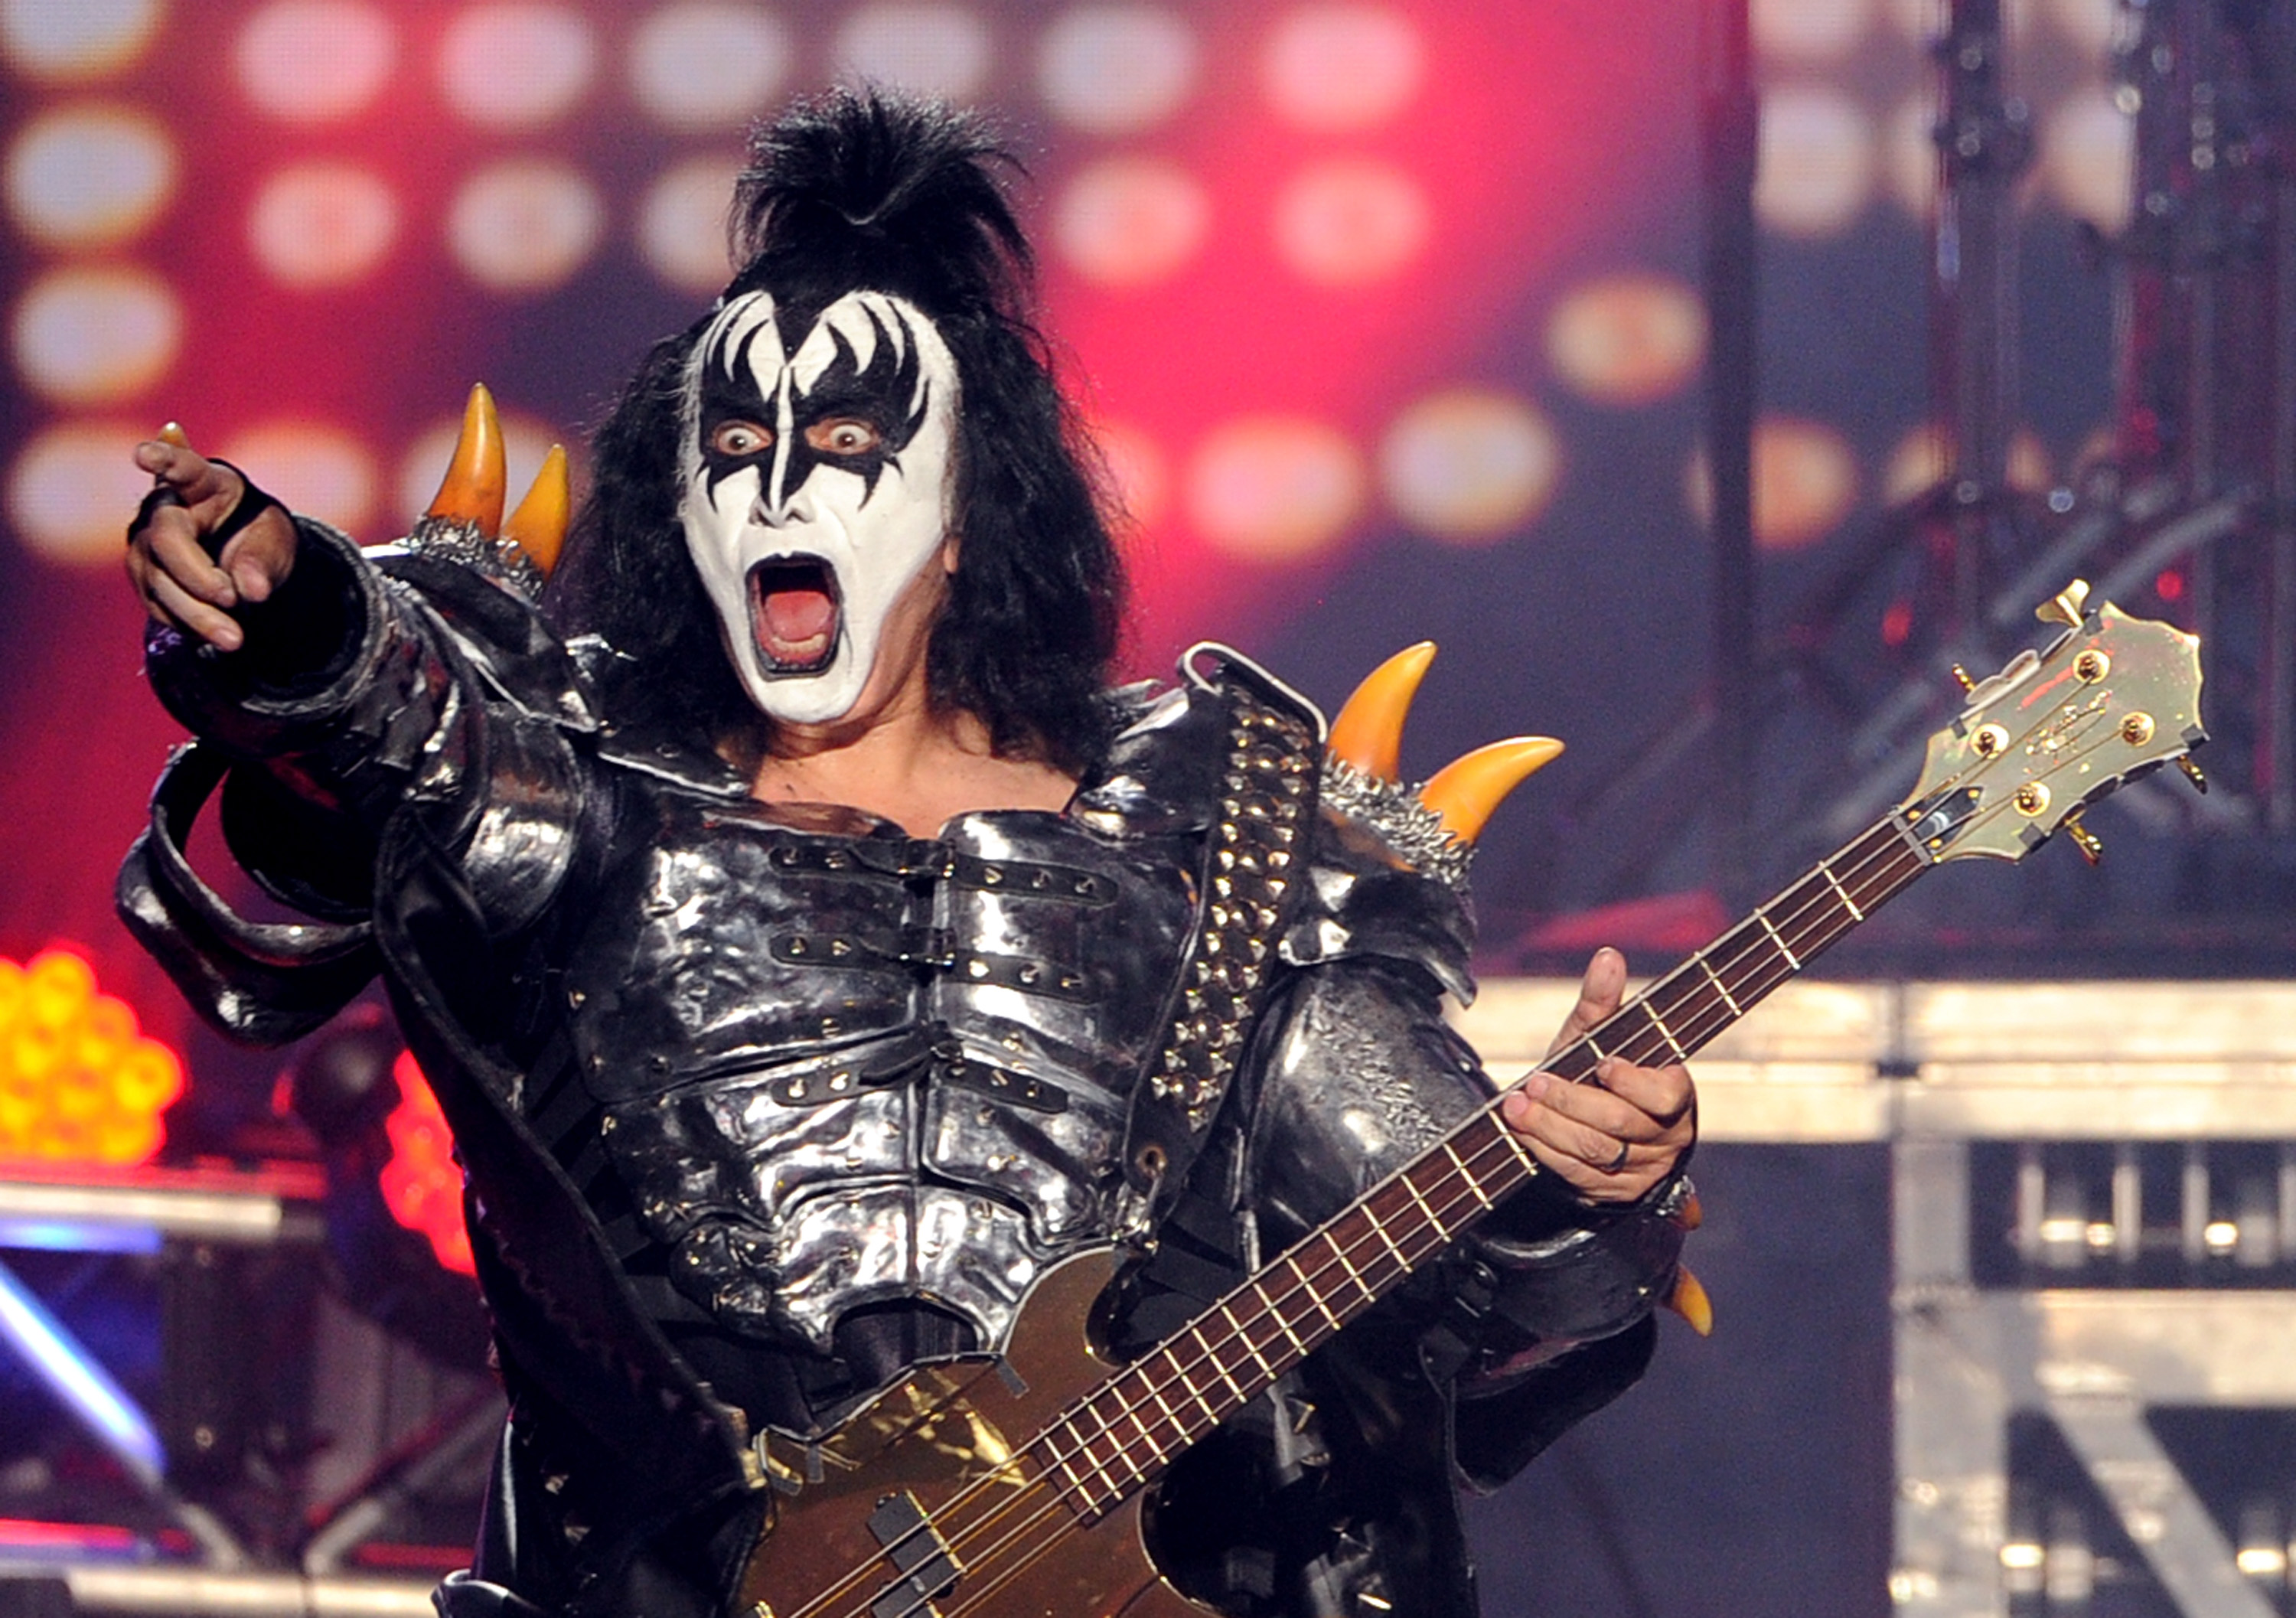 WATCH: Gene Simmons falls over live onstage during a KISS gig